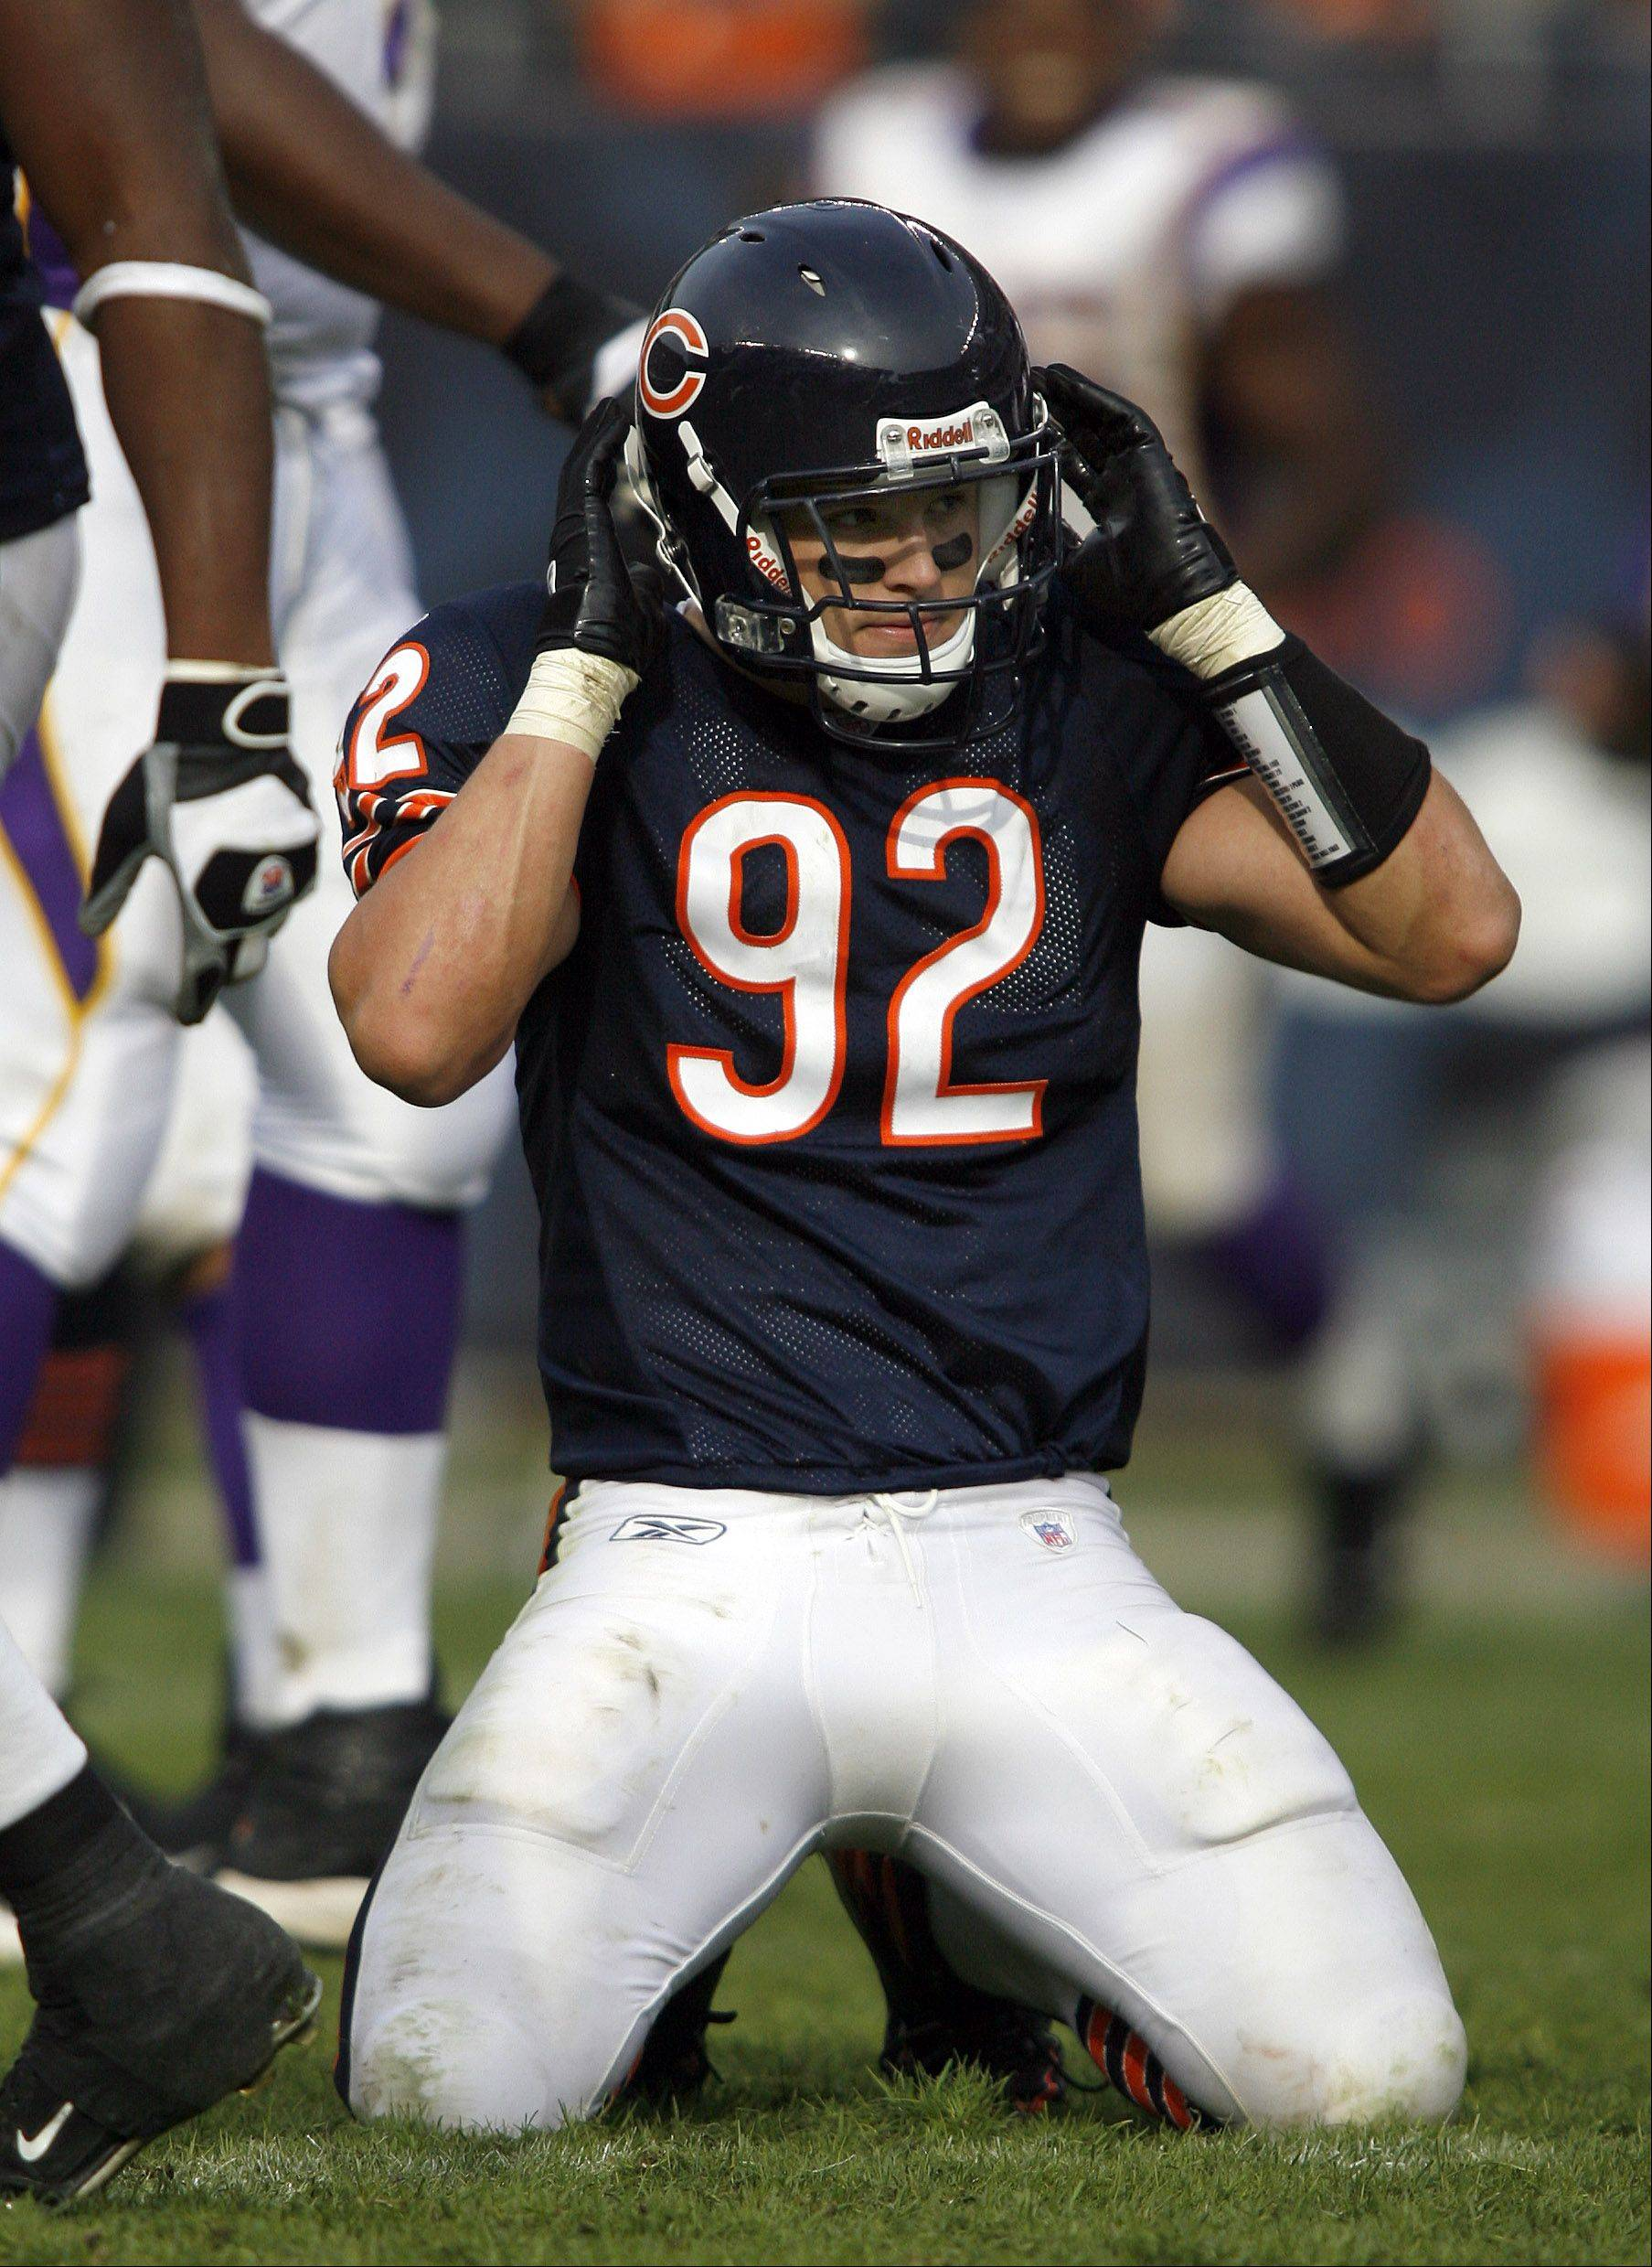 Former Chicago Bears linebacker Hunter Hillenmeyer will talk about injury prevention with athletes and parents Wednesday at Naperville North High School.